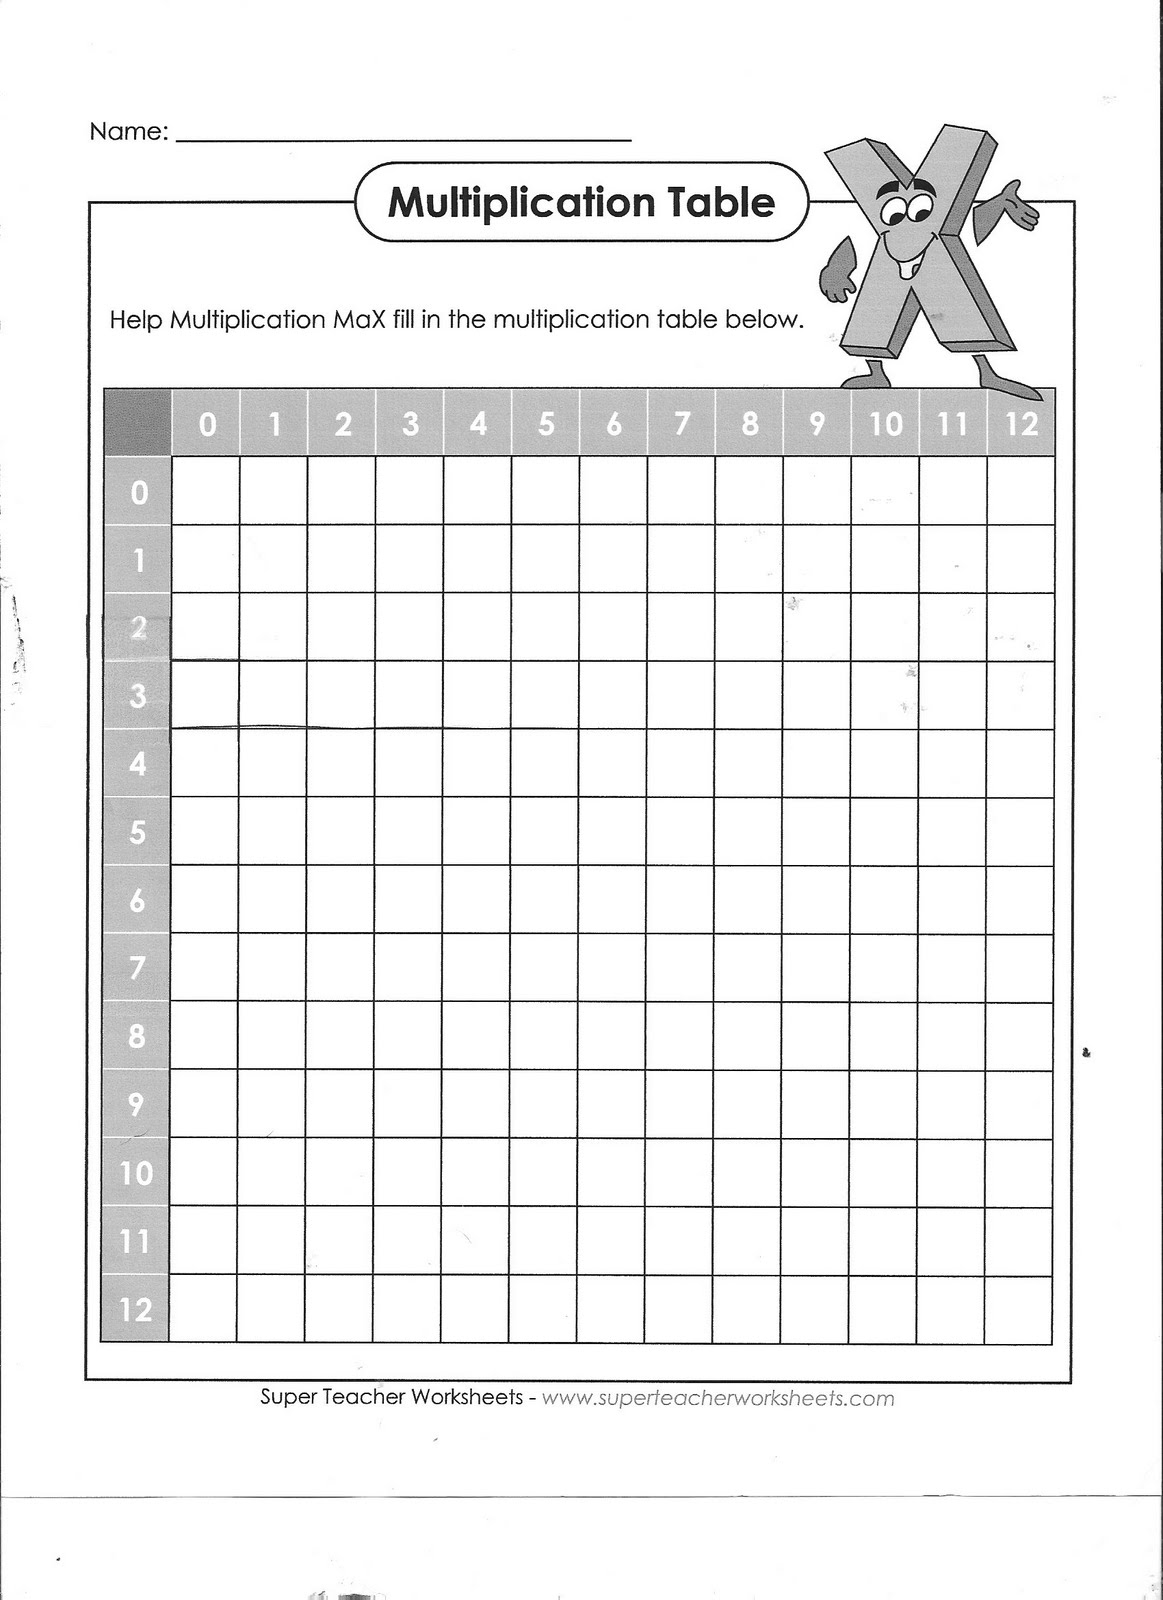 Blank Class Schedule Grid Multiplication grid